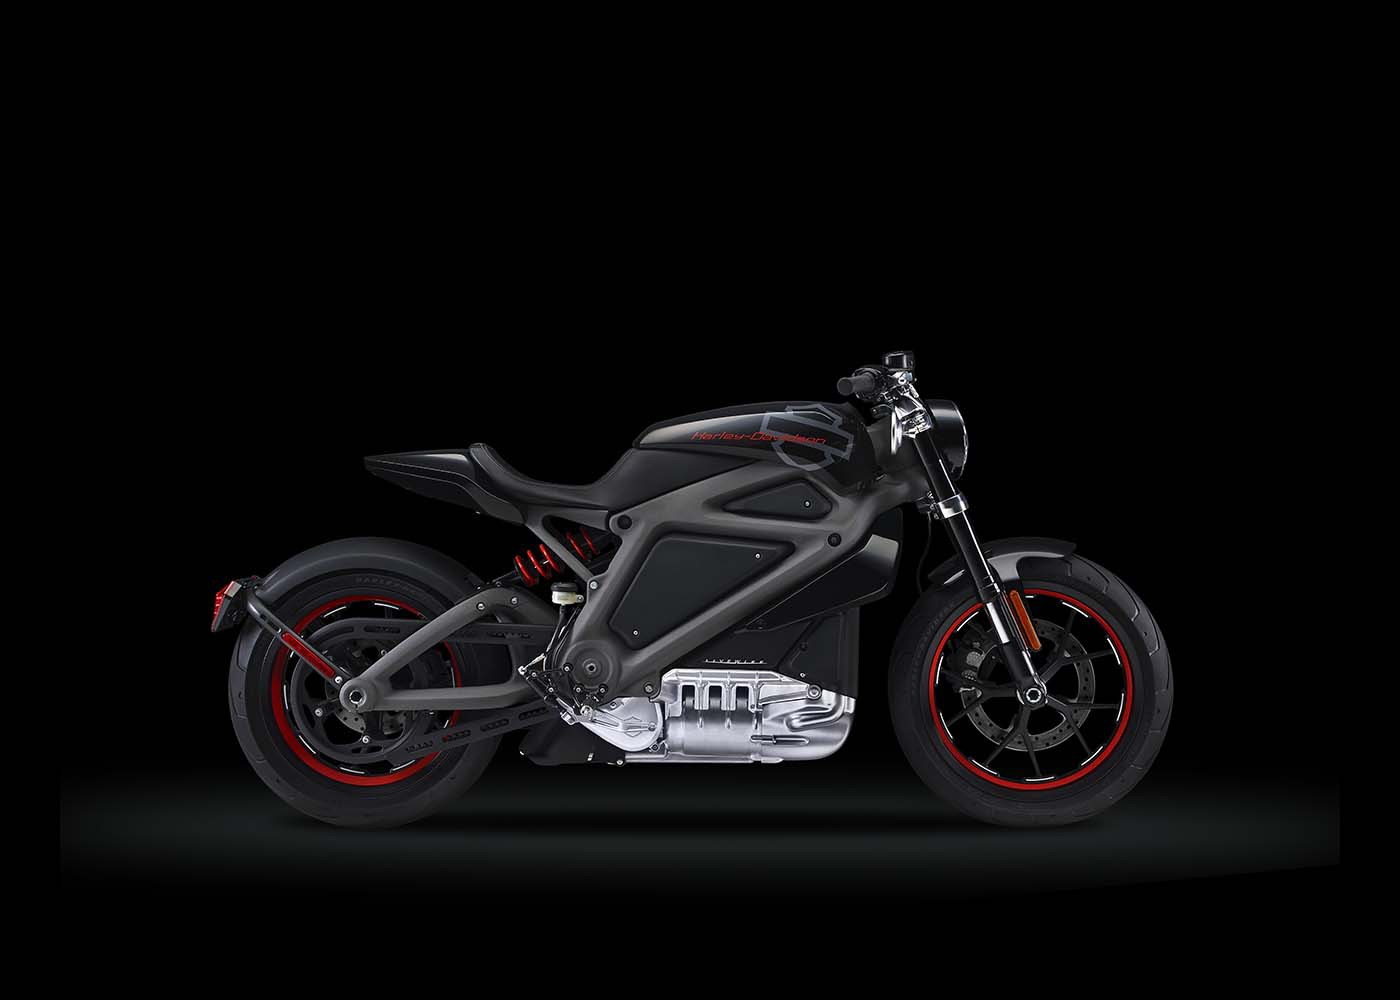 Harley Davidson Livewire electric motorcycle 08